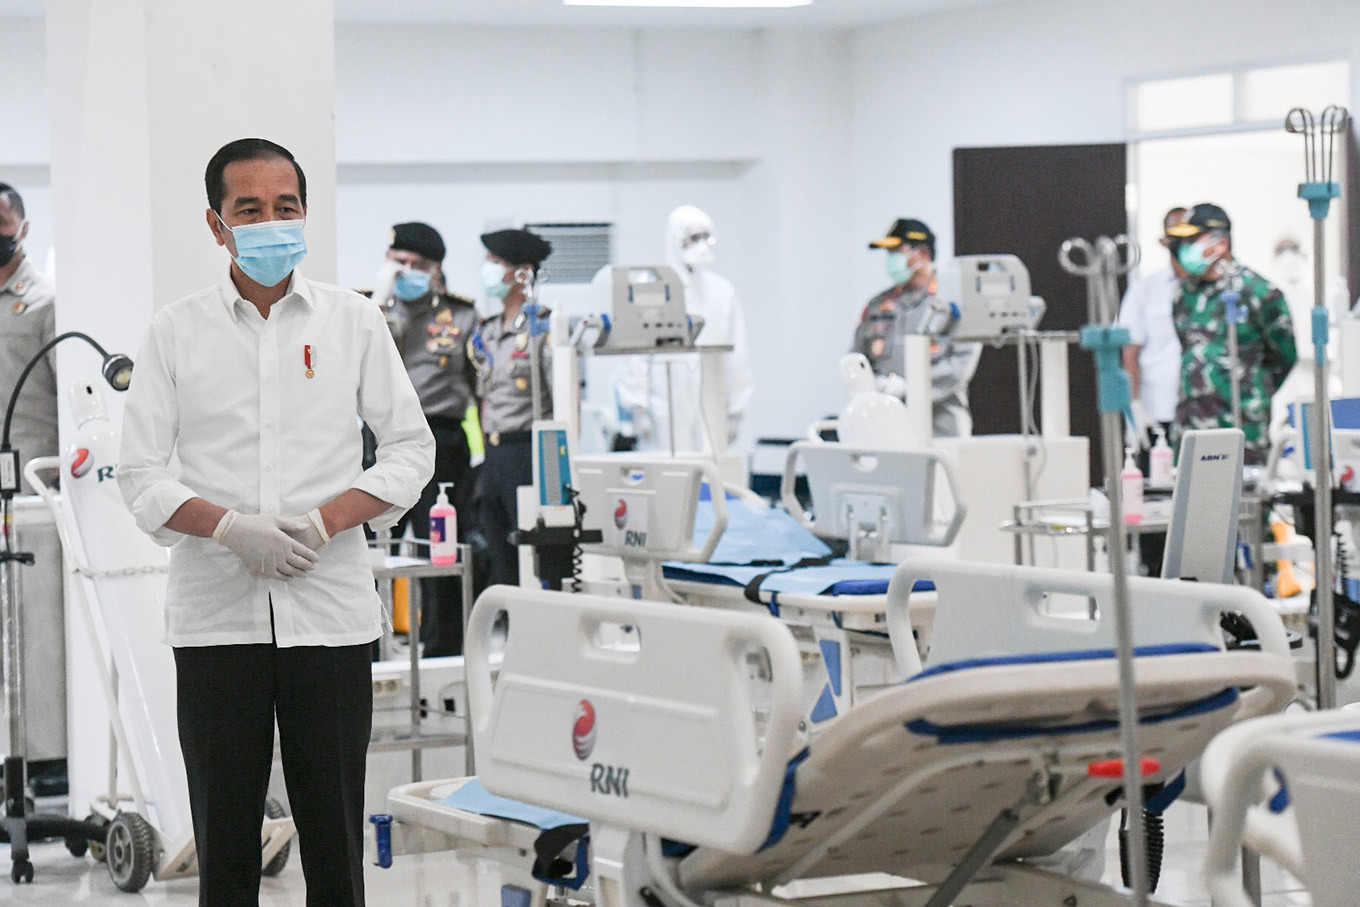 Indonesia focuses COVID-19 tests on worst-hit provinces